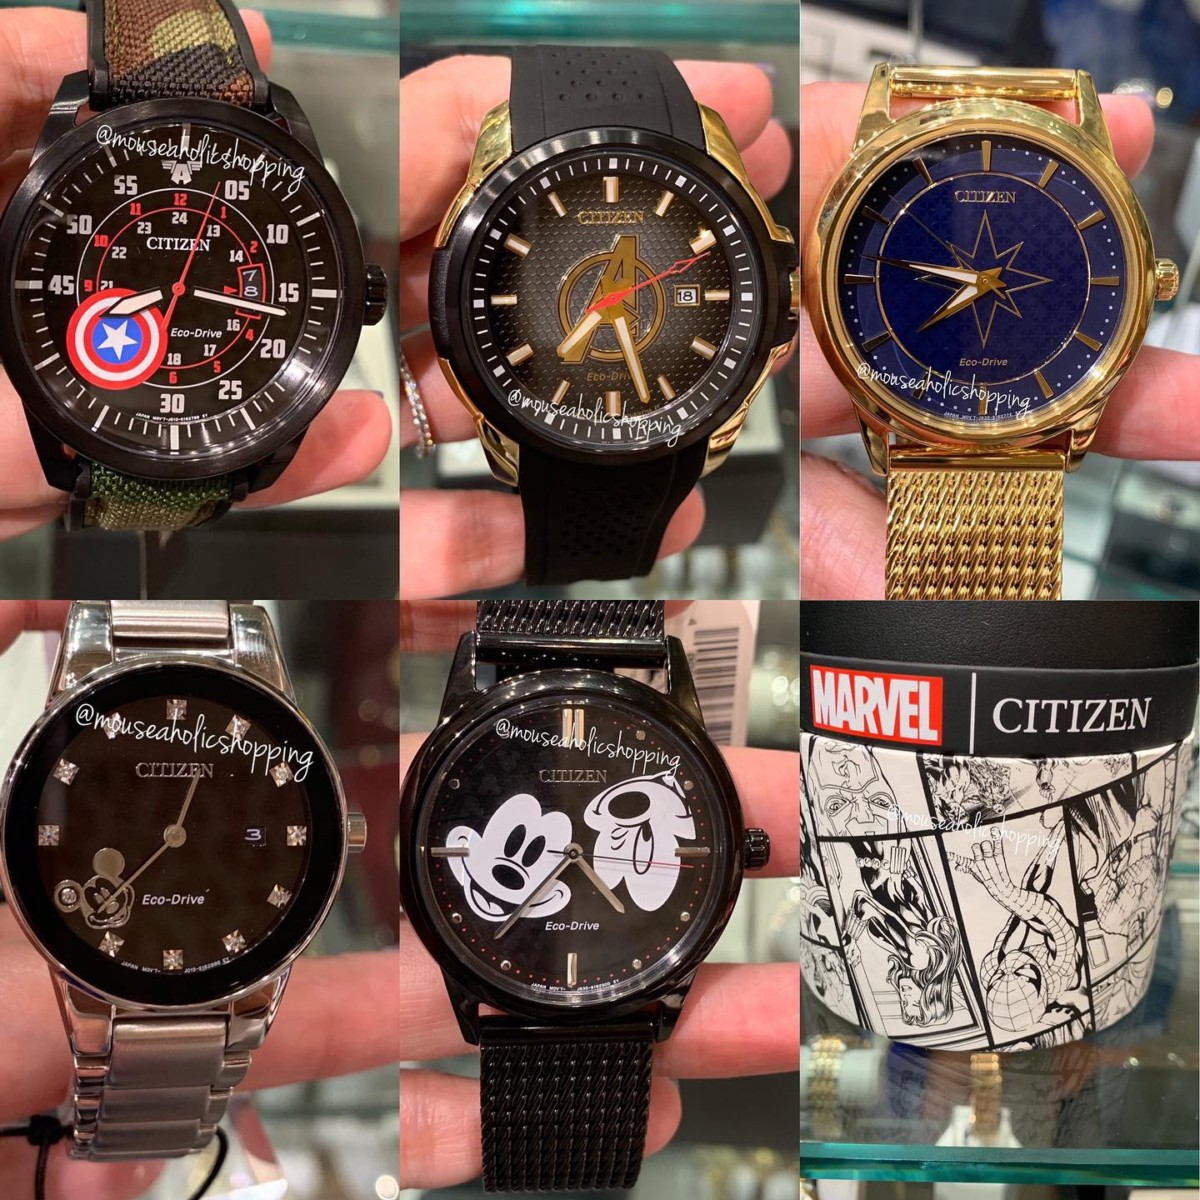 These new watches are infused with Marvel super powers and our favorite Mickey Mouse 8